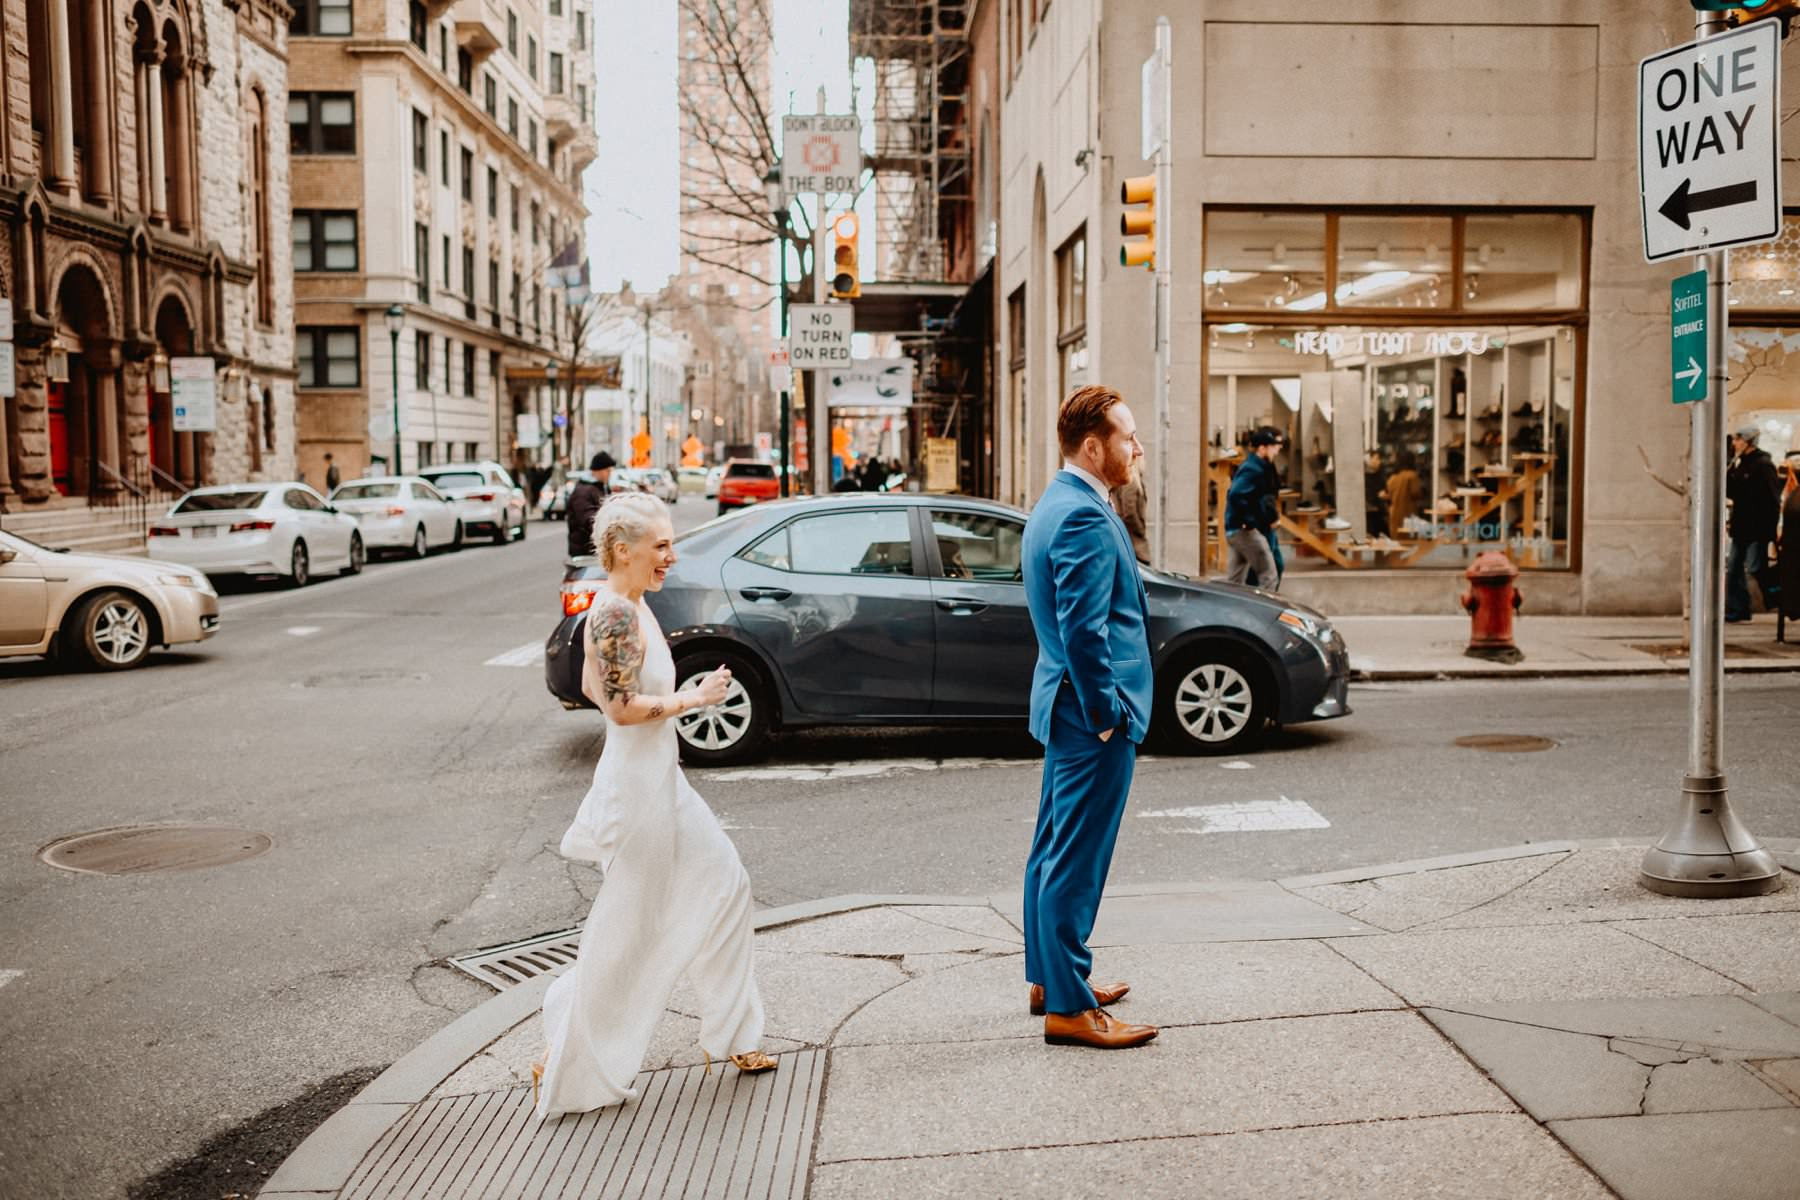 mission_taqueria_philly_wedding-22.jpg